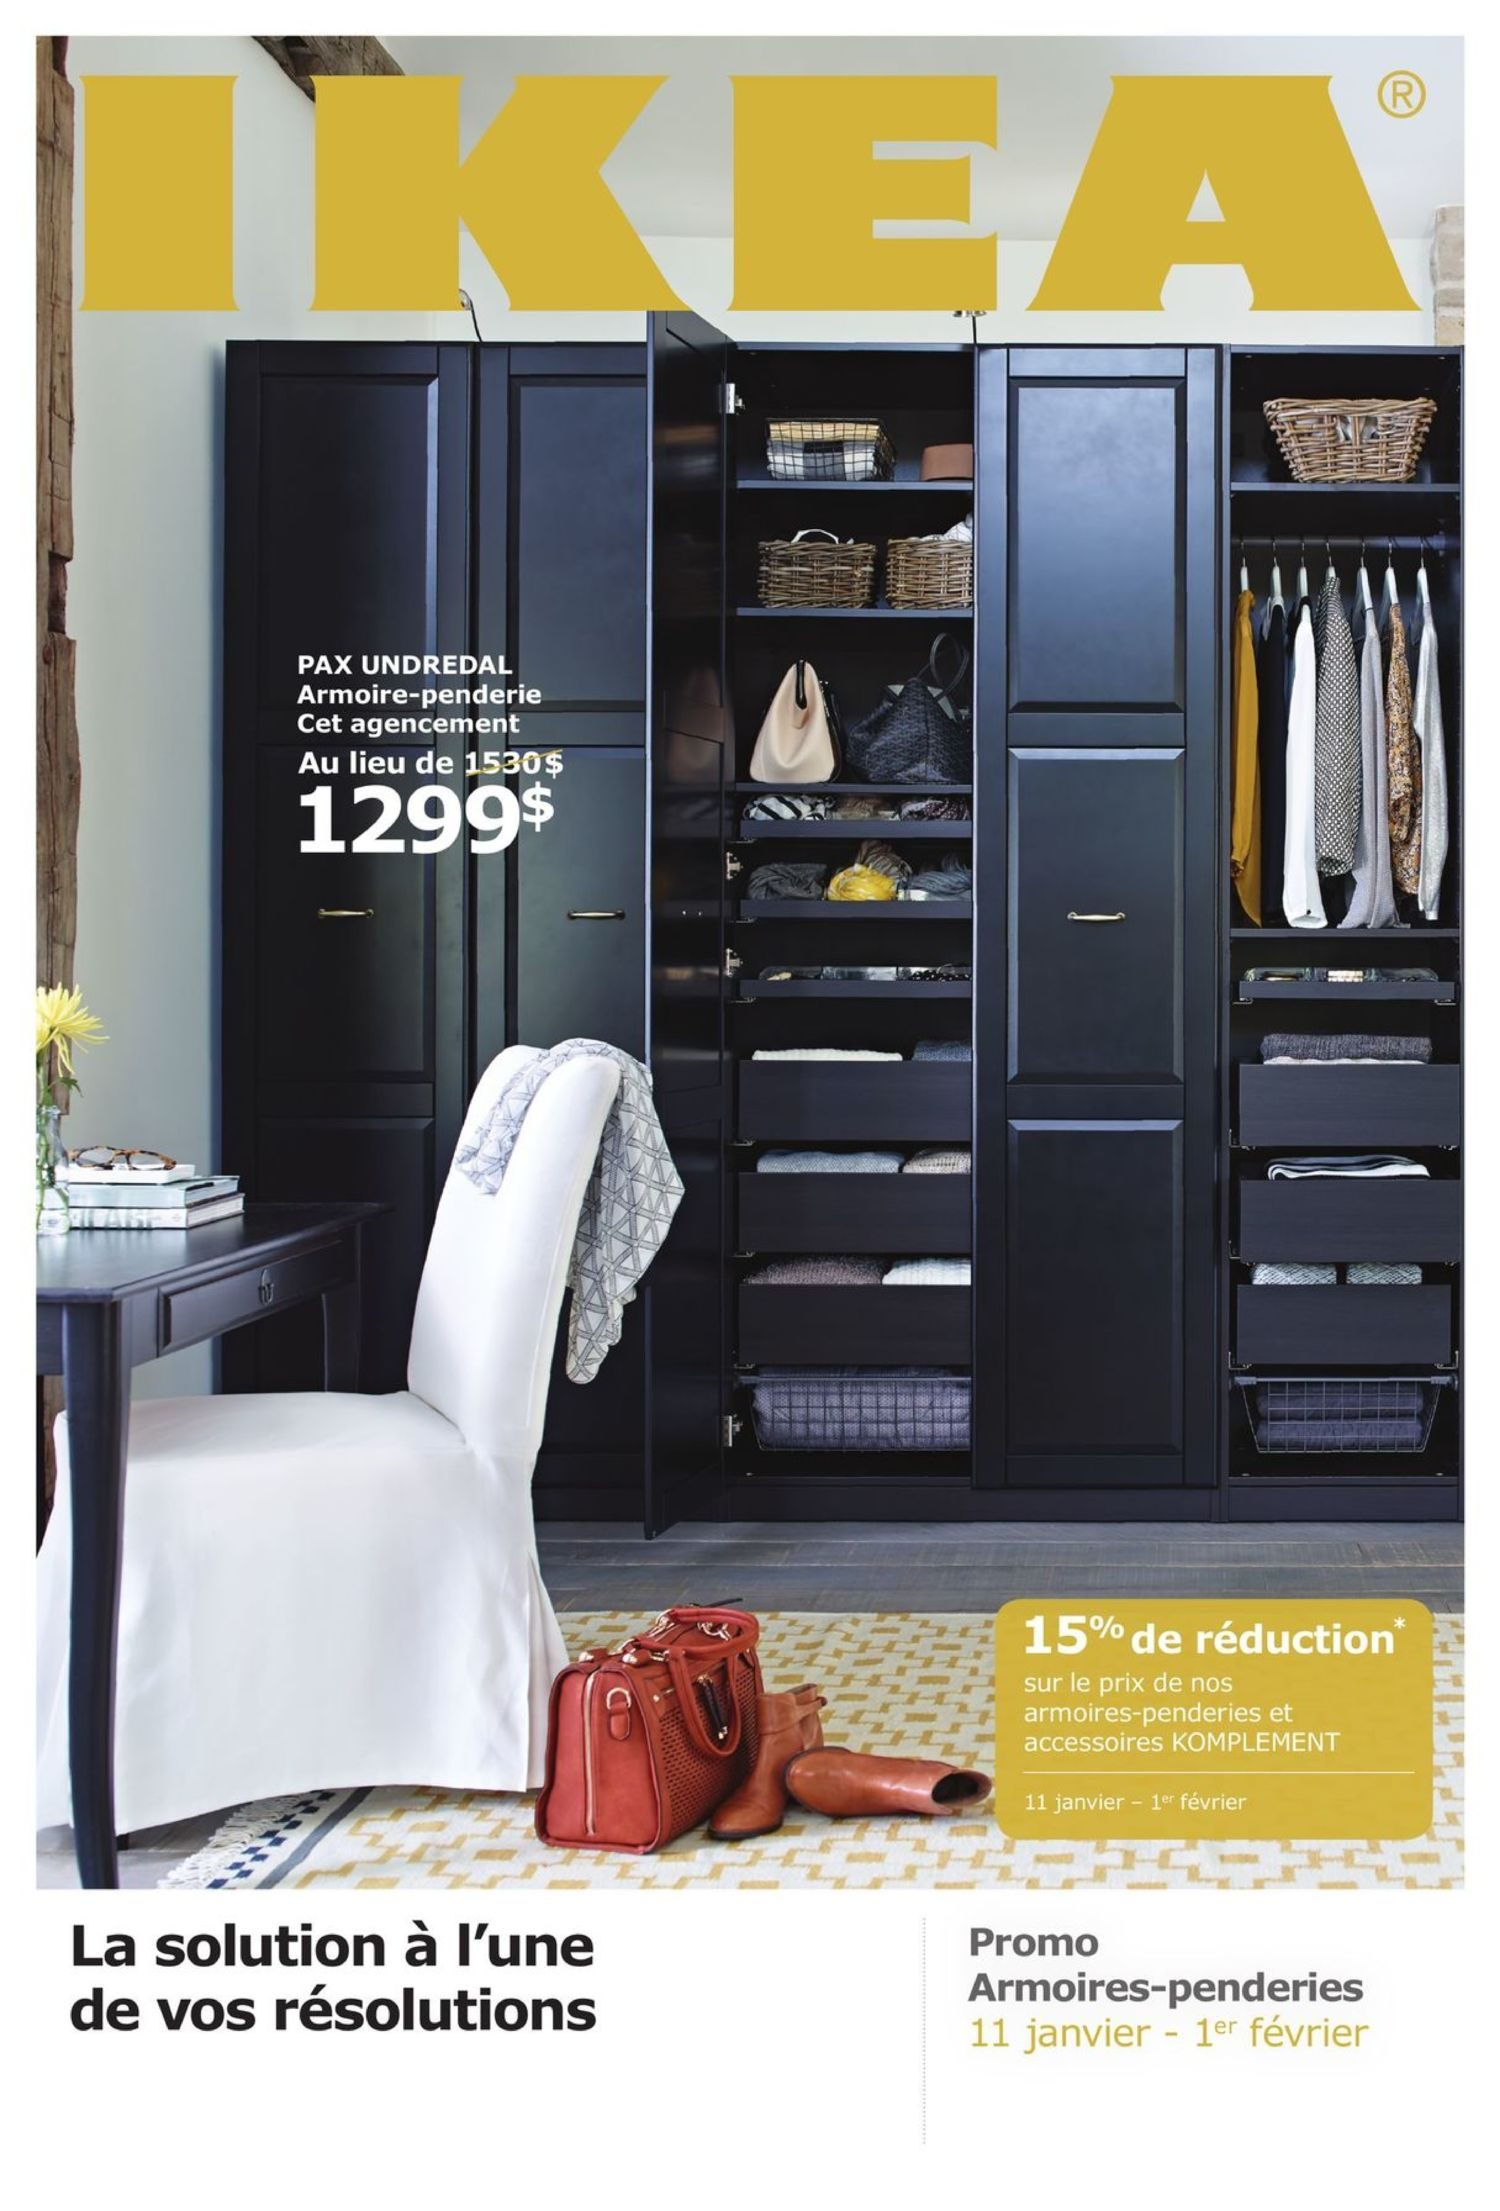 Armoire Promo Ikea Weekly Flyer Promo Armoires Penderies Fr Jan 11 Feb 1